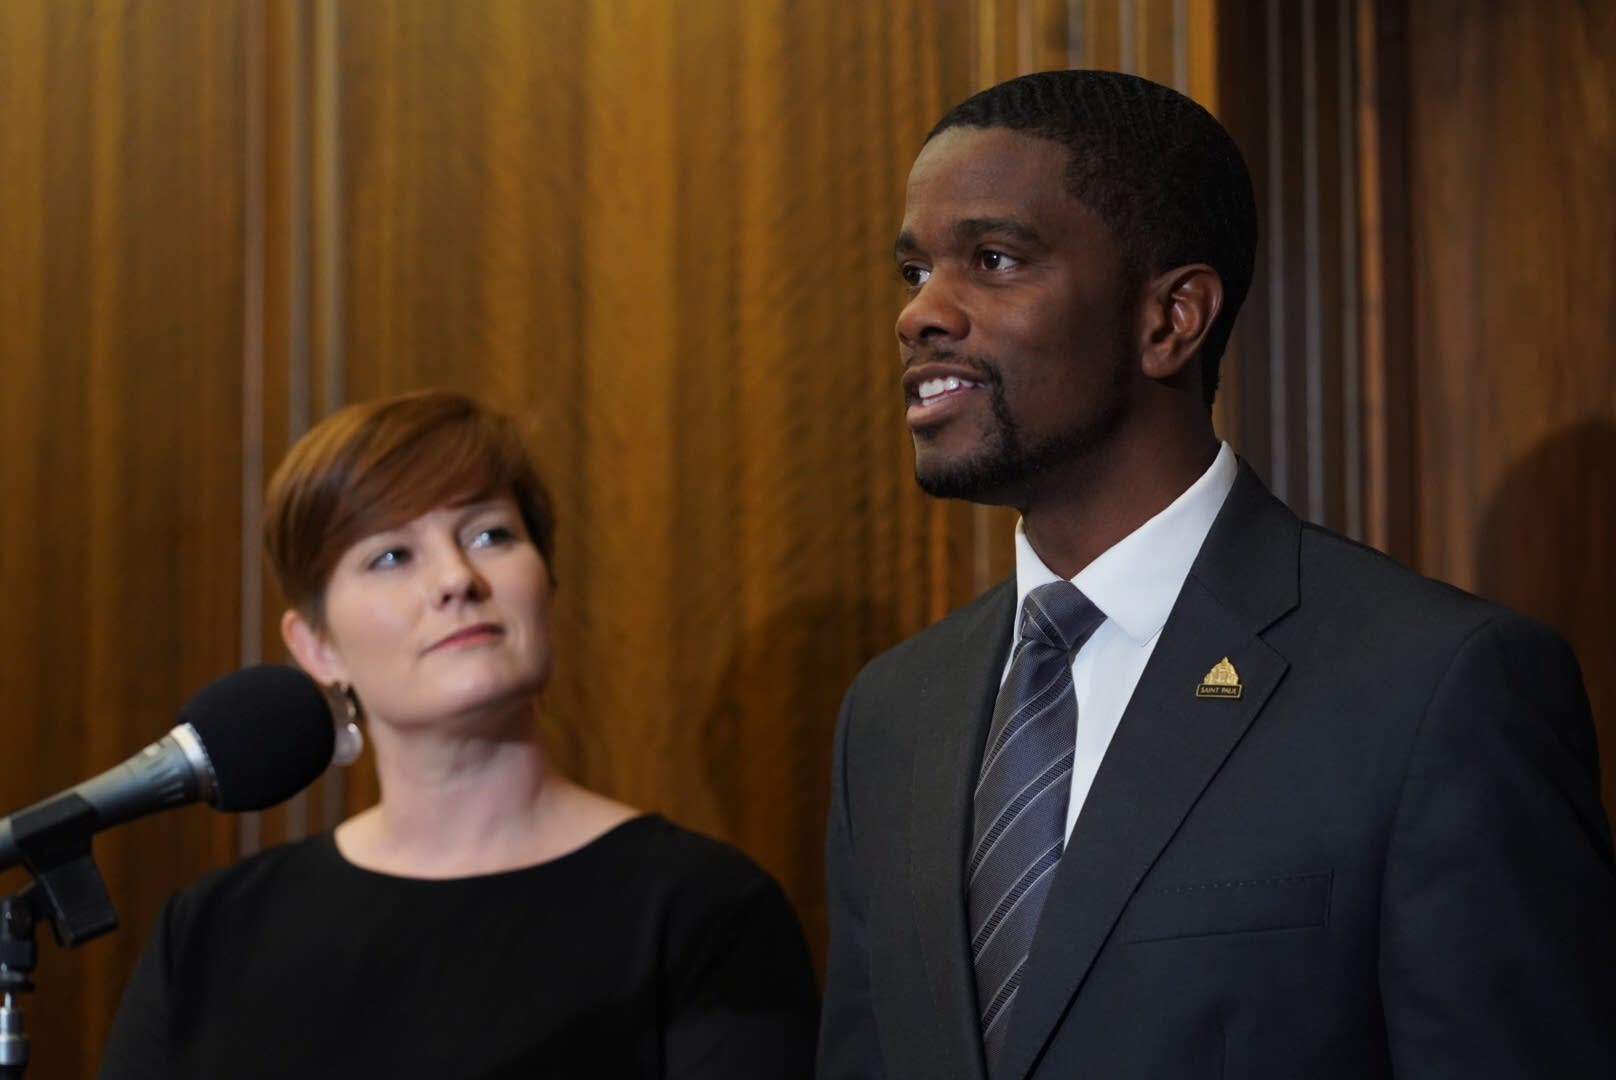 St. Paul Mayor Melvin Carter announces a $15 an hour minimum wage.